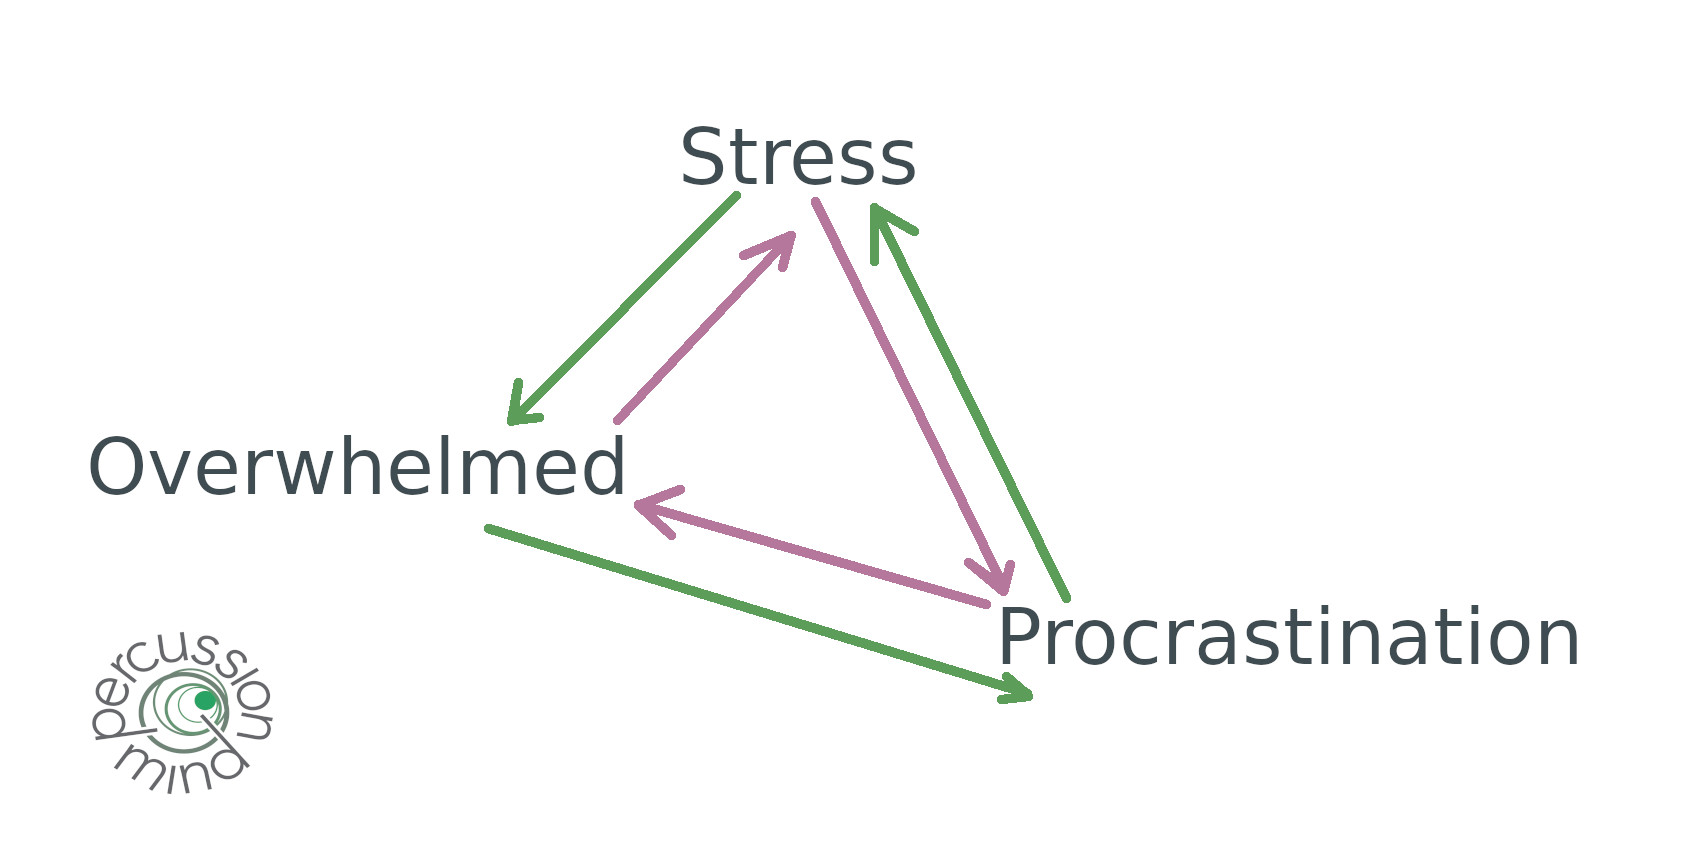 Procrastination-Stress-Overwhelm graphic.jpg